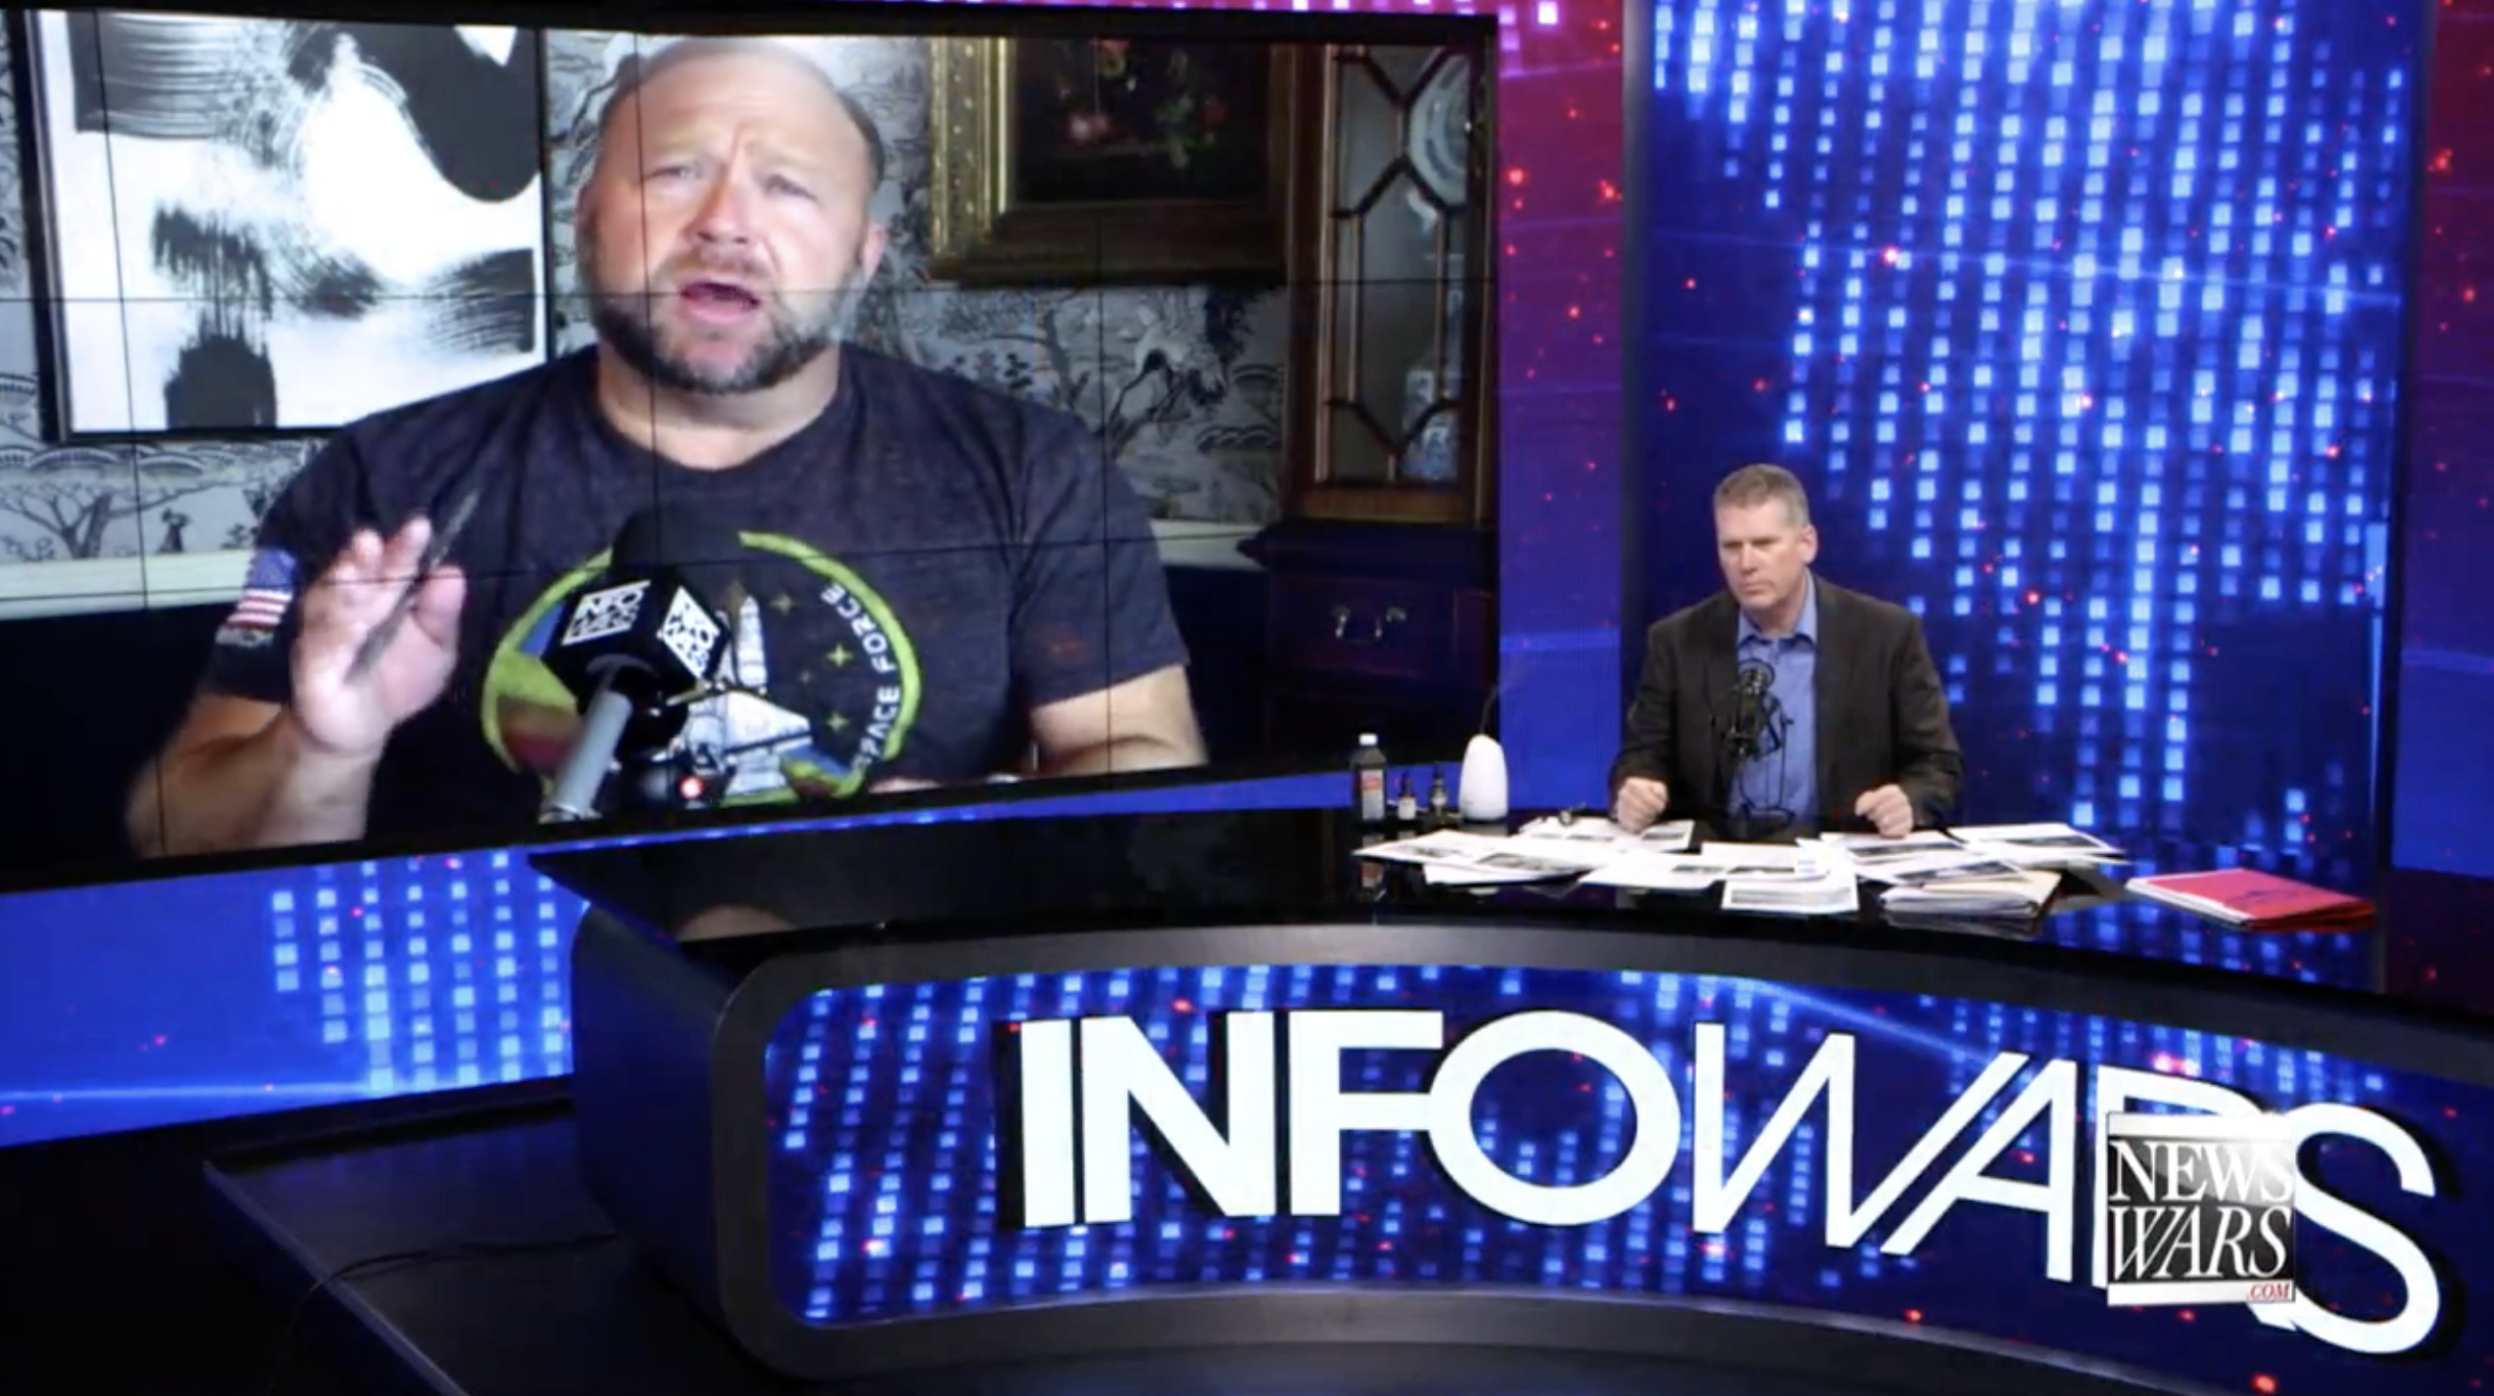 Alex Jones Mike Adams Infowars 2 28 2020